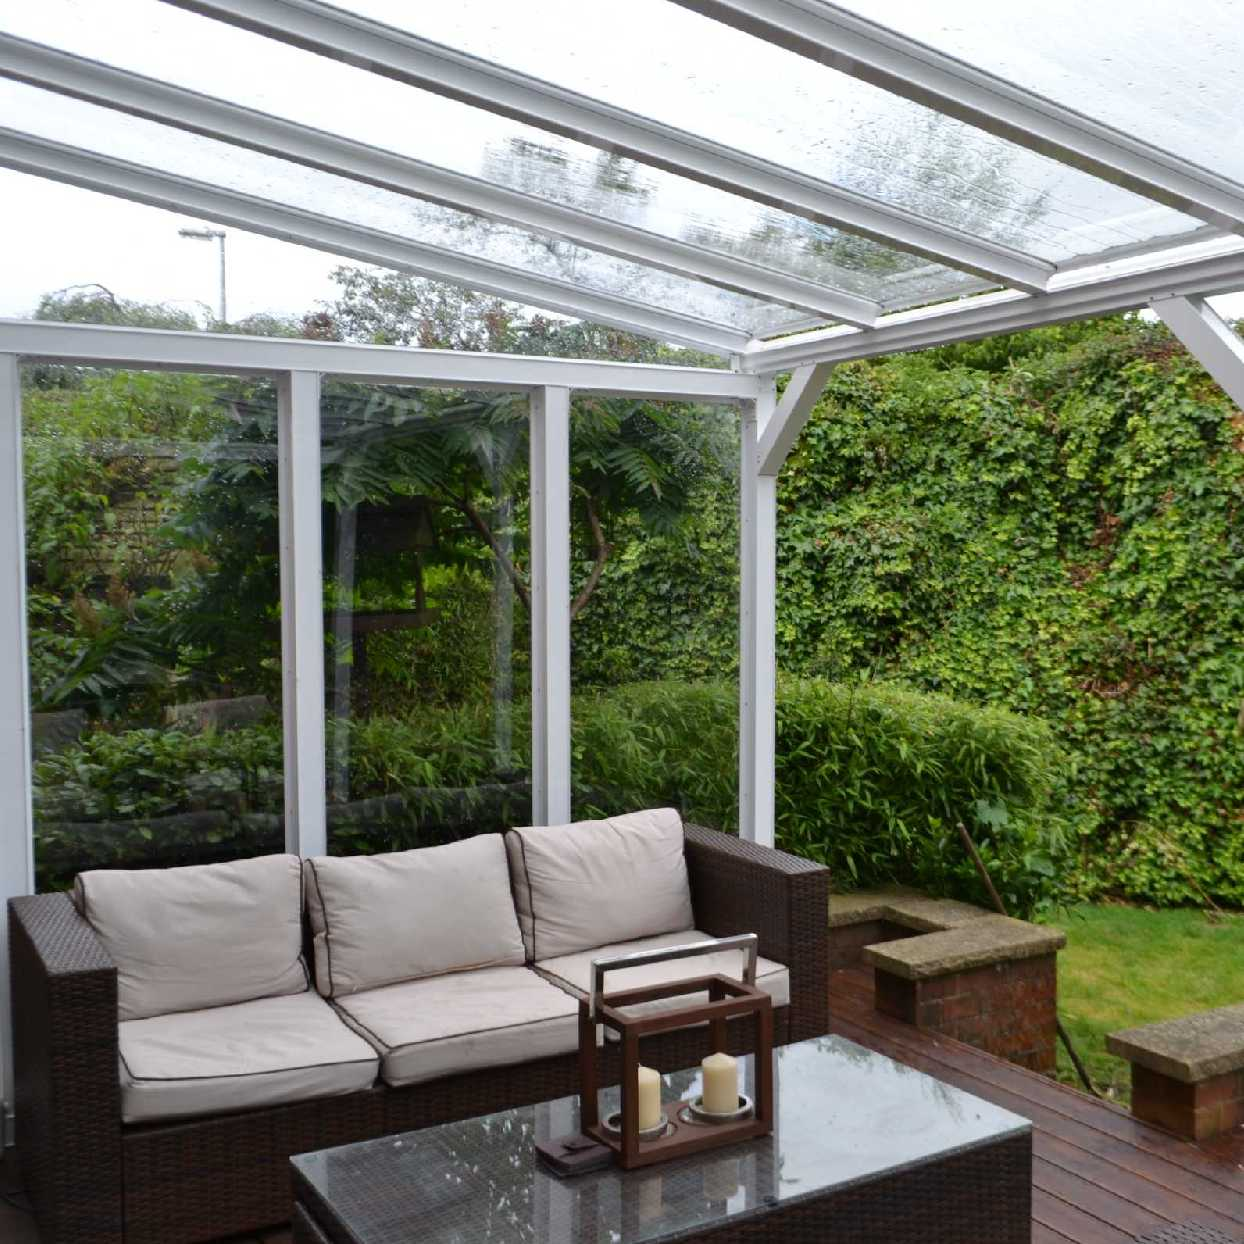 Great selection of Omega Smart White Lean-To Canopy with 16mm Polycarbonate Glazing - 2.1m (W) x 2.5m (P), (2) Supporting Posts